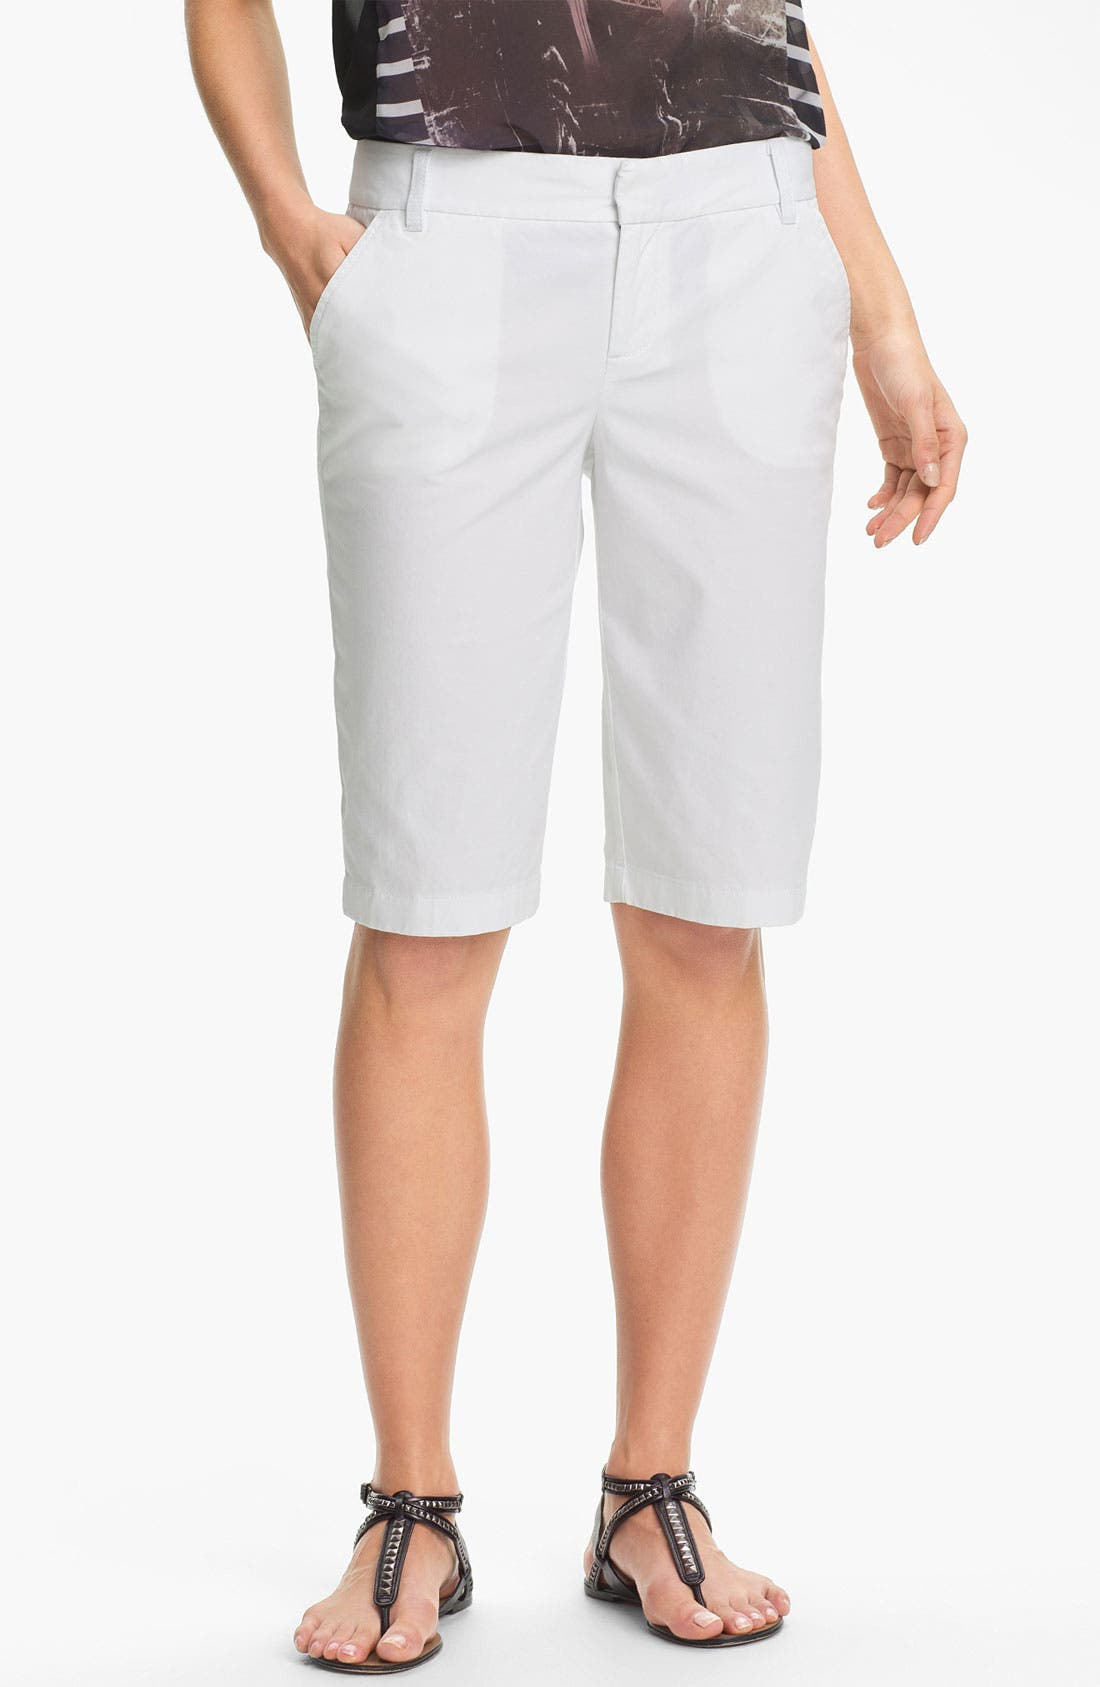 Alternate Image 1 Selected - Caslon® Twill Bermuda Shorts (Regular & Petite)